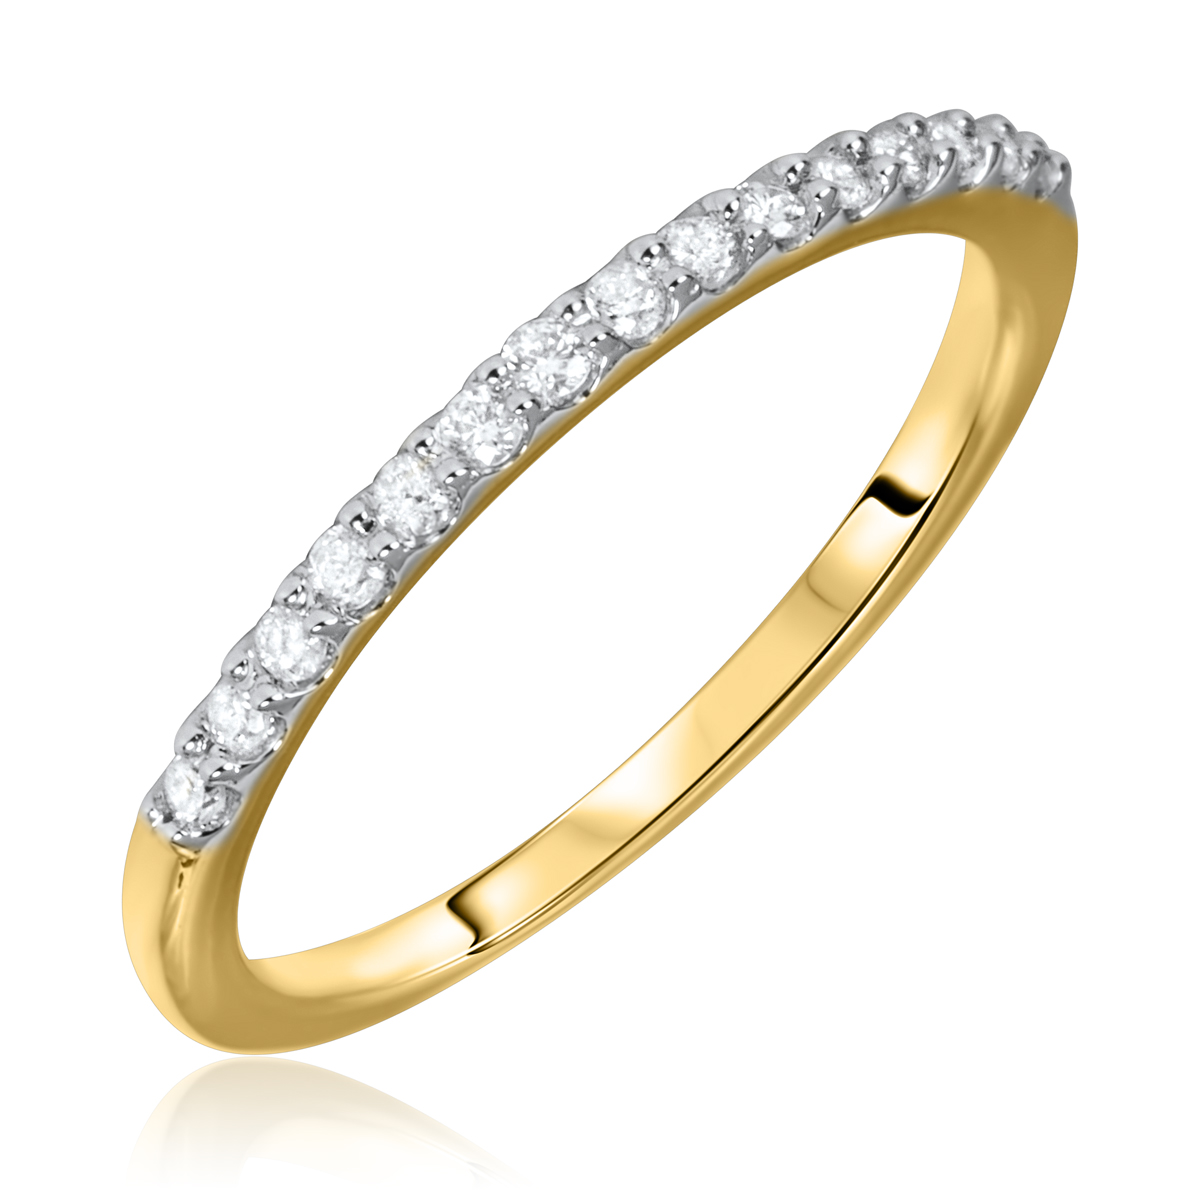 1/6 Carat T.W. Round Cut Diamond Ladies Wedding Band 14K Yellow Gold- Size 8